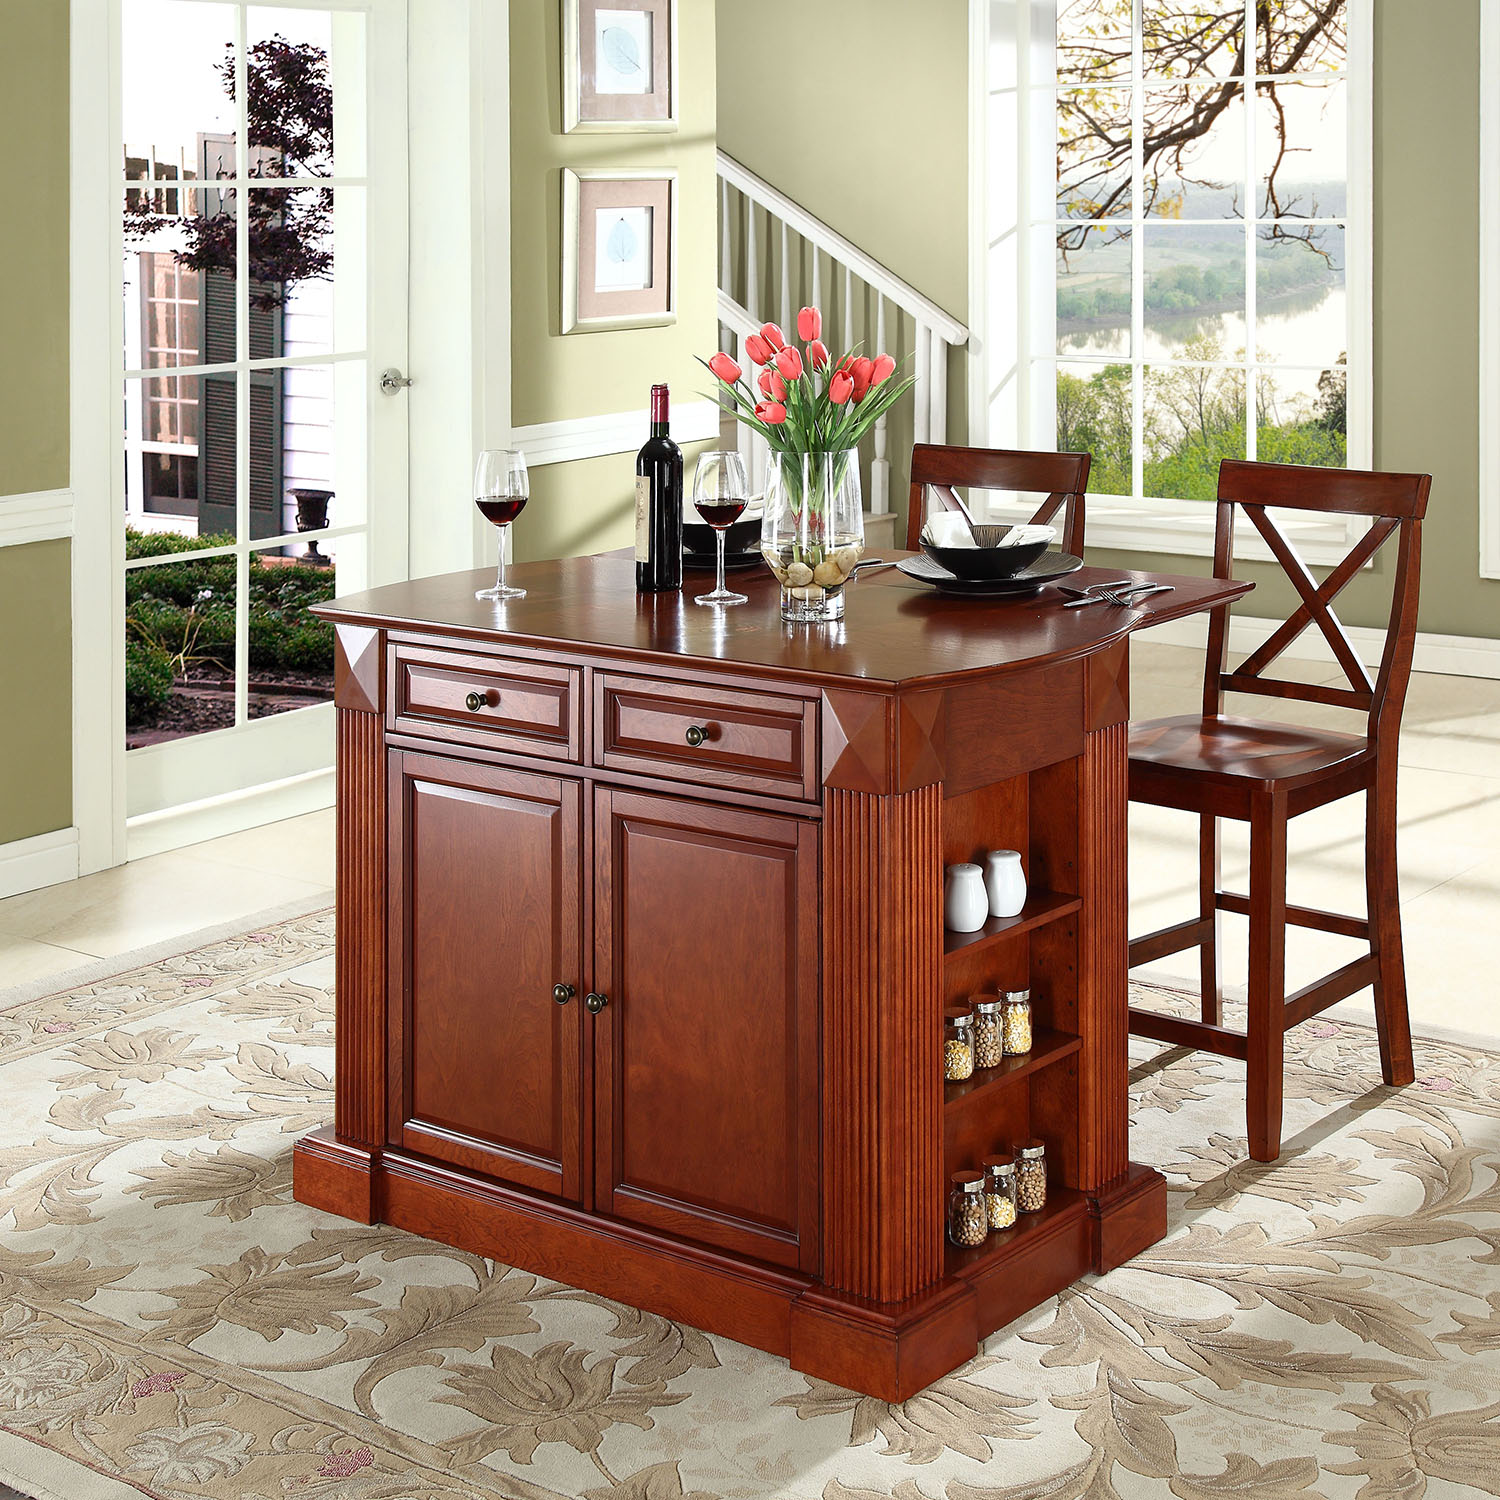 kitchen islands with drop leaf drop leaf kitchen island in cherry with 24 quot cherry x back stools dcg stores 6172